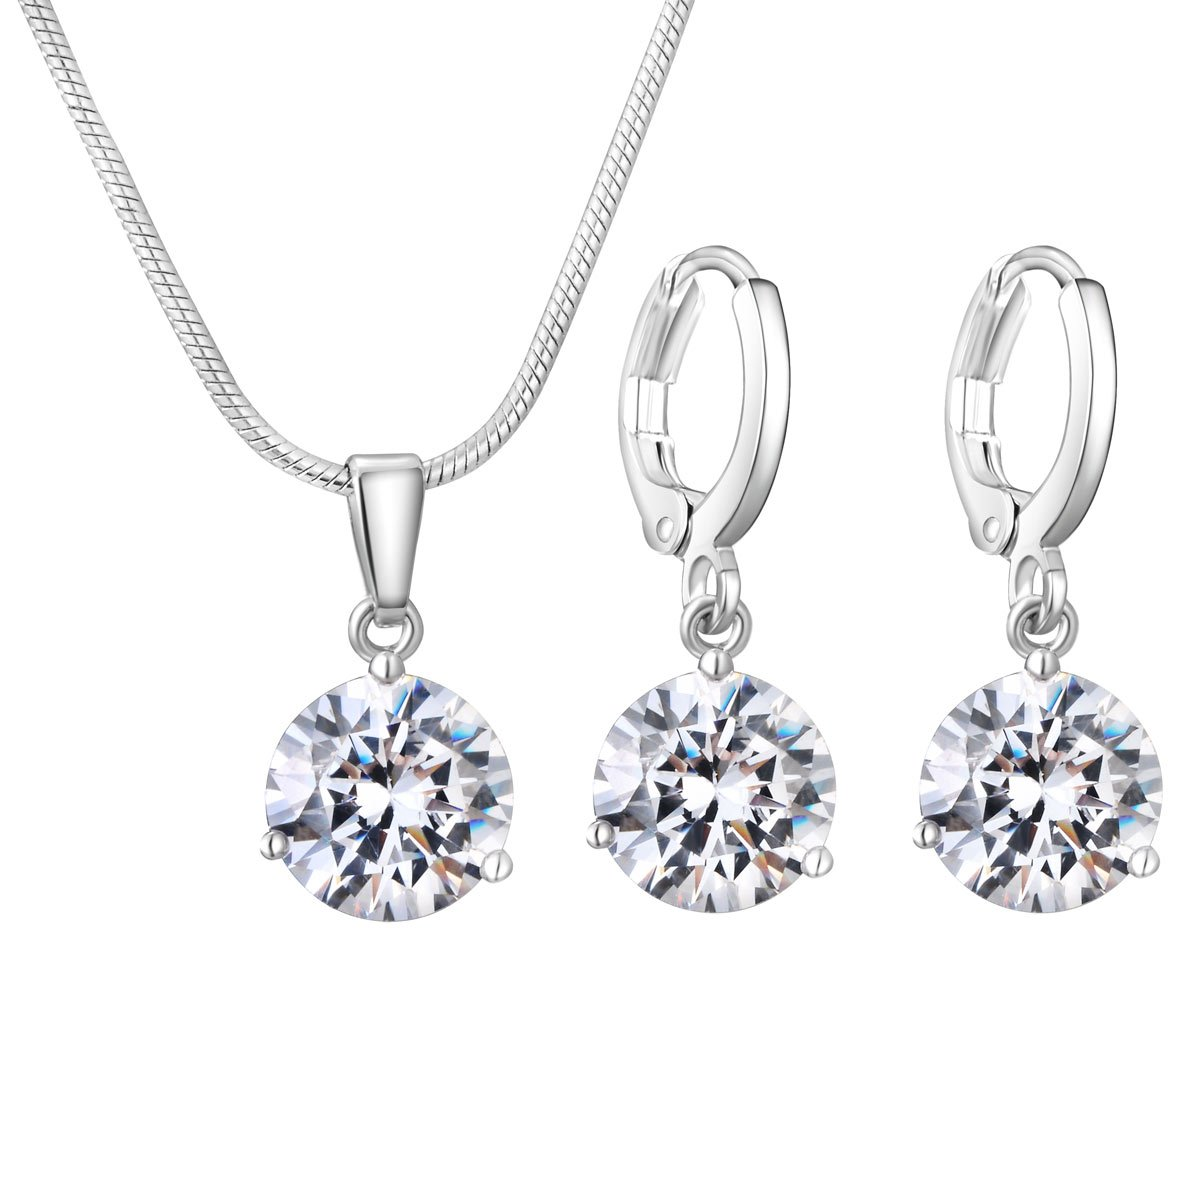 CARSINEL White Gold Plated Jewelry Sets Solitaire Cubic Zirconia Pendant Necklace & Earrings for Women Gifts